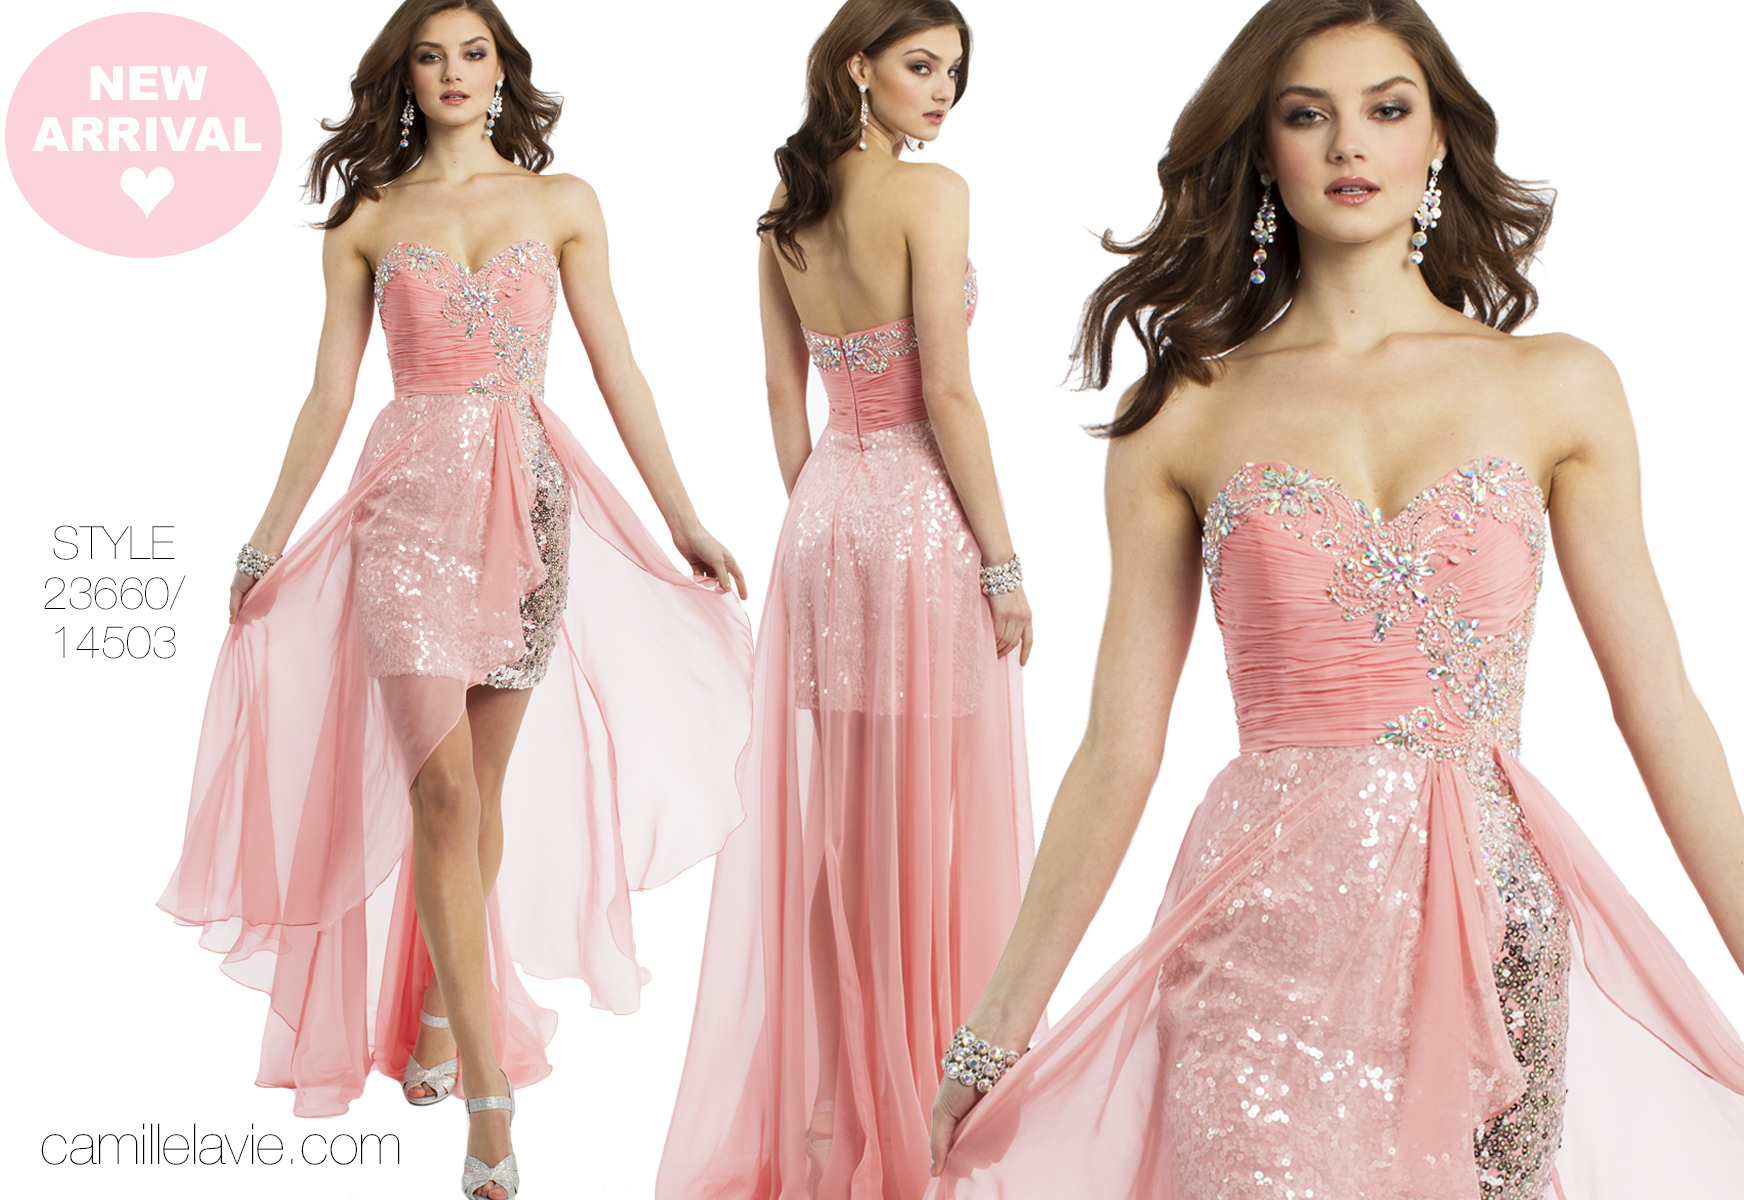 prom dresses 2014,best dresses prom,best prom dresses in the world images,sparkly debs dresses,camille la vie prom dresses 2018,Prettiest Prom Dress in the World ,2014 Spring Formal Dresses,Sparkly Pink Prom Dresses,Prom Dresses in La,Best Prom Dresses in the World ,La Style Dresses,Prom Gowns 2014, Camille La Vie Prom Dresses,Camille La Vie Prom Dresses,Pink Sparkle Dress,2014 Prom Dress,Pink Prom Dresses 2014,Cocktail Dresses Spring 2014,The Most Elegant Prom Dresses,Both Dresses,Prom Dresses Spring 2014 , Best Prom Dresses in the World,World's Best Dress in the World,Sparkly Prom Dresses 2014,The Best Dress for Spring,Camille Prom Dresses 2014,Prom Dress in the World,Best Prom Dresses for 2014,Best Dress in the World,Best Prom Dresses of 2014,